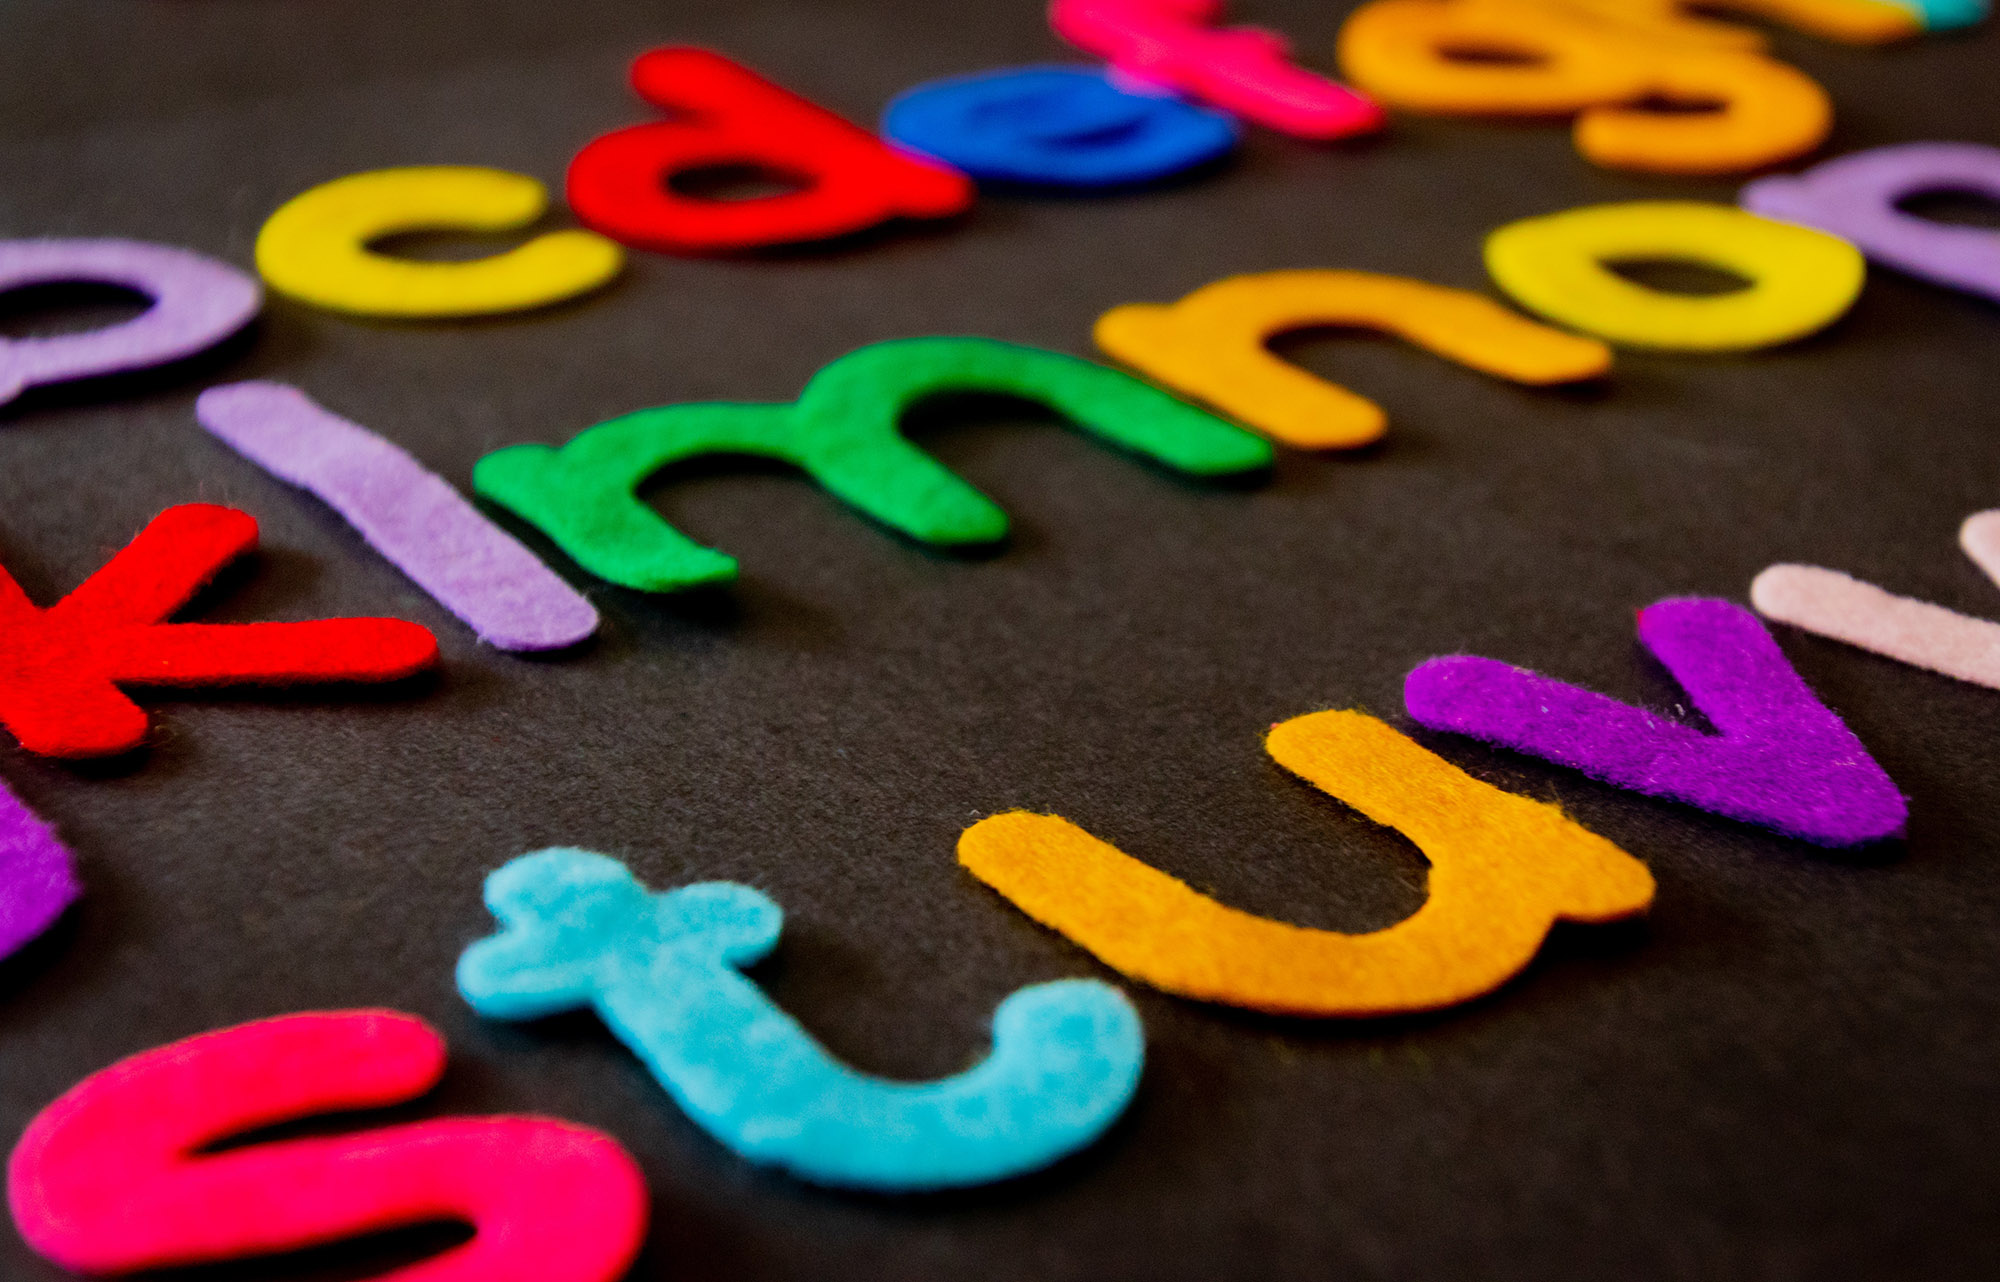 isolation activities for children, learning letters